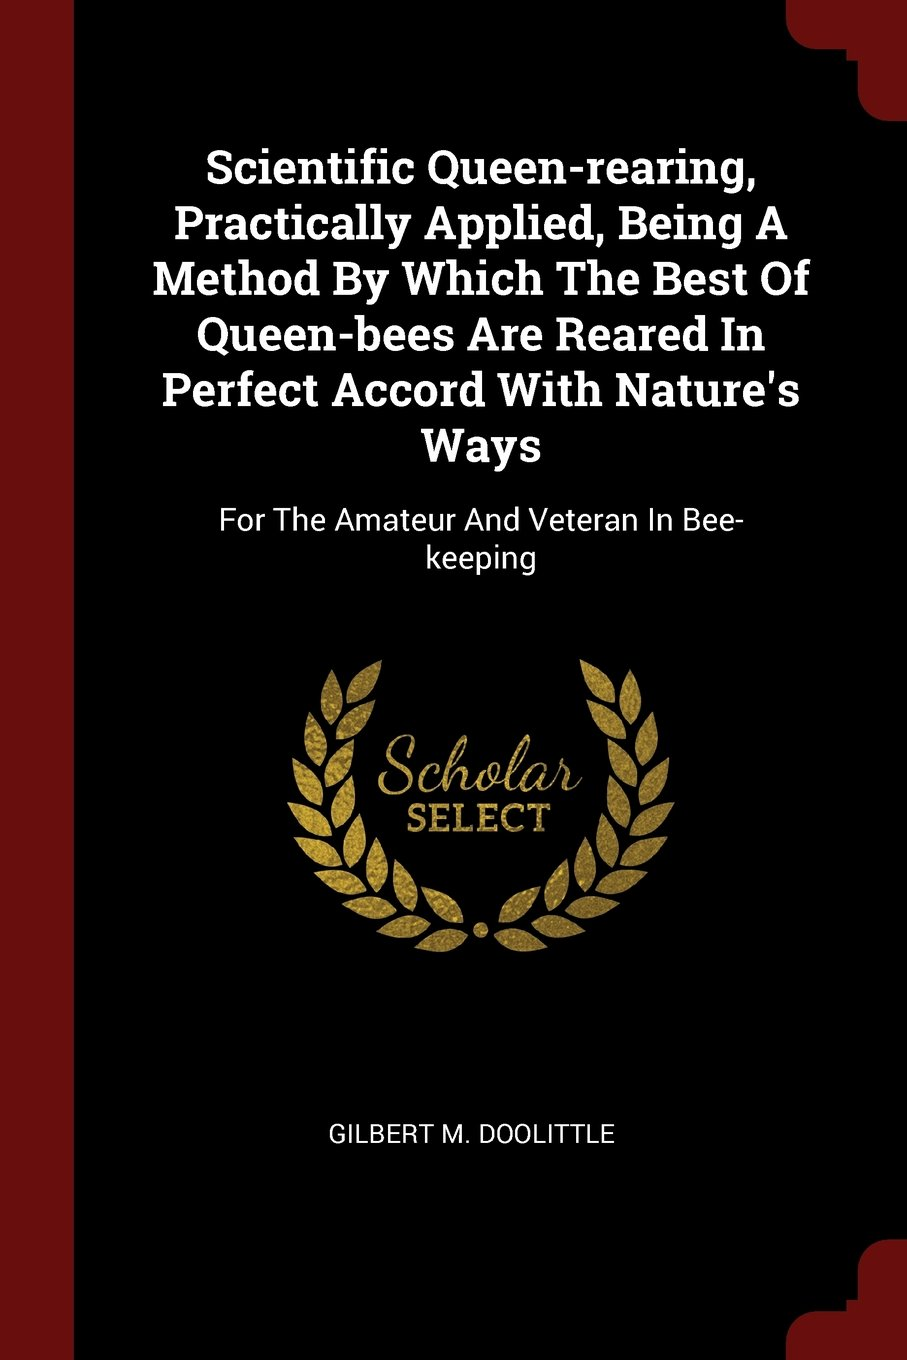 Download Scientific Queen-rearing, Practically Applied, Being A Method By Which The Best Of Queen-bees Are Reared In Perfect Accord With Nature's Ways: For The Amateur And Veteran In Bee-keeping PDF